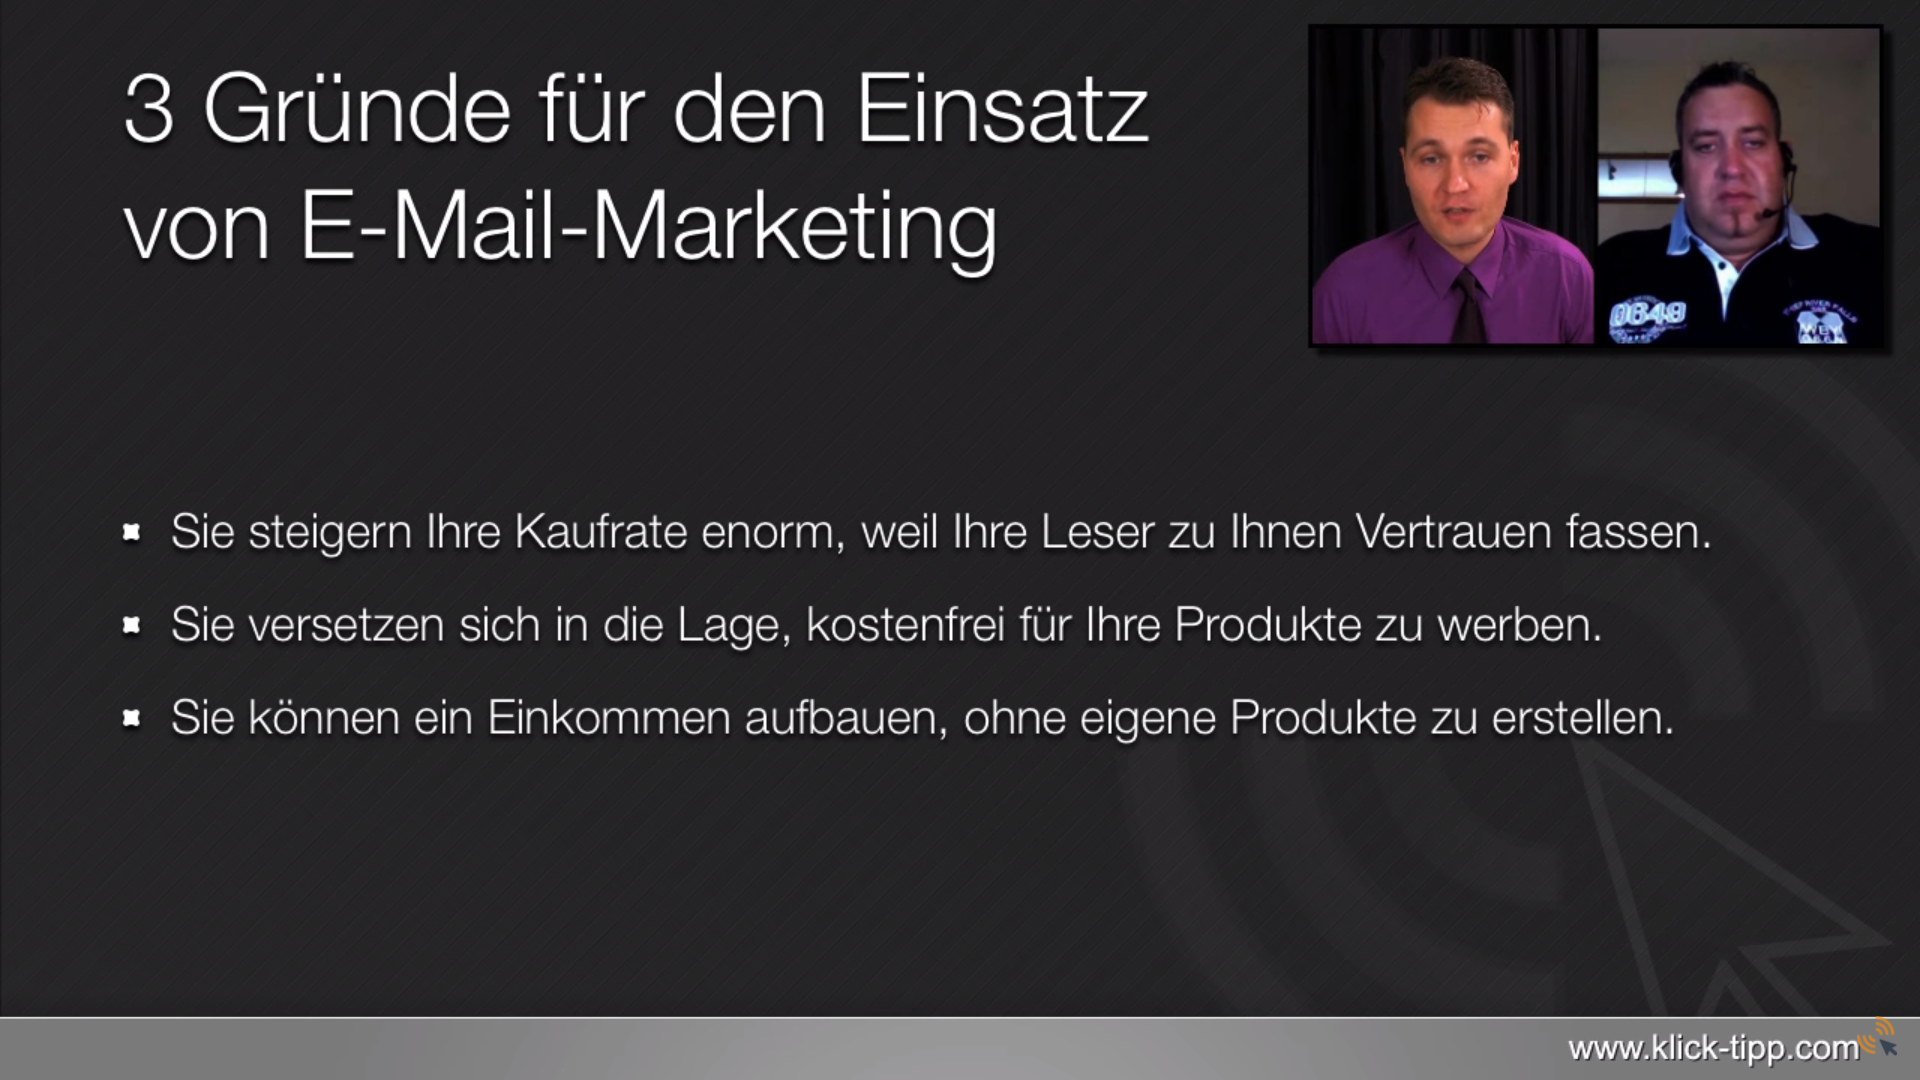 218.865 Euro Umsatz mit professionellem E-Mail-Marketing